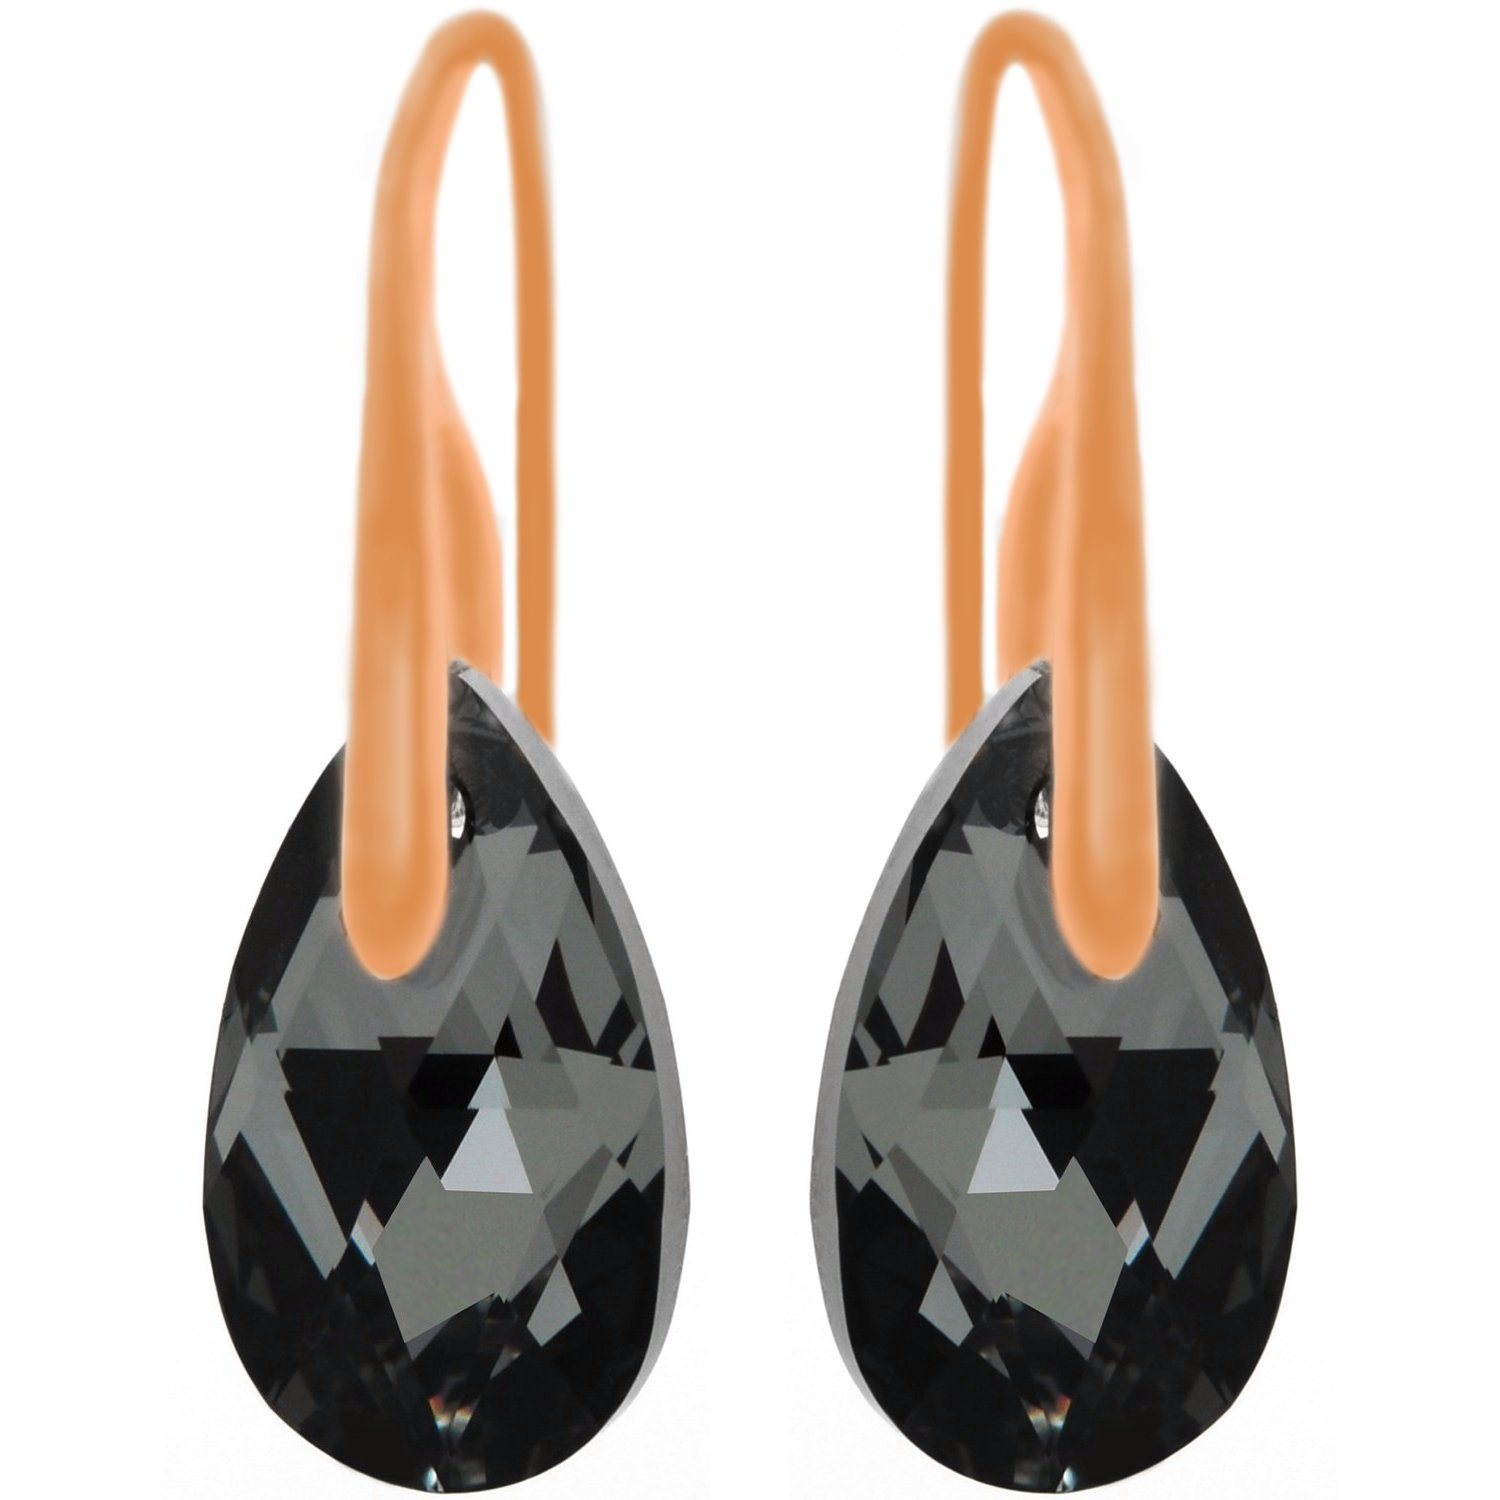 Royal Crystals 18CT Rose Gold Plated Sterling Silver Black Grey Teardrop Hook Pierced Earrings with Swarovski Crystals